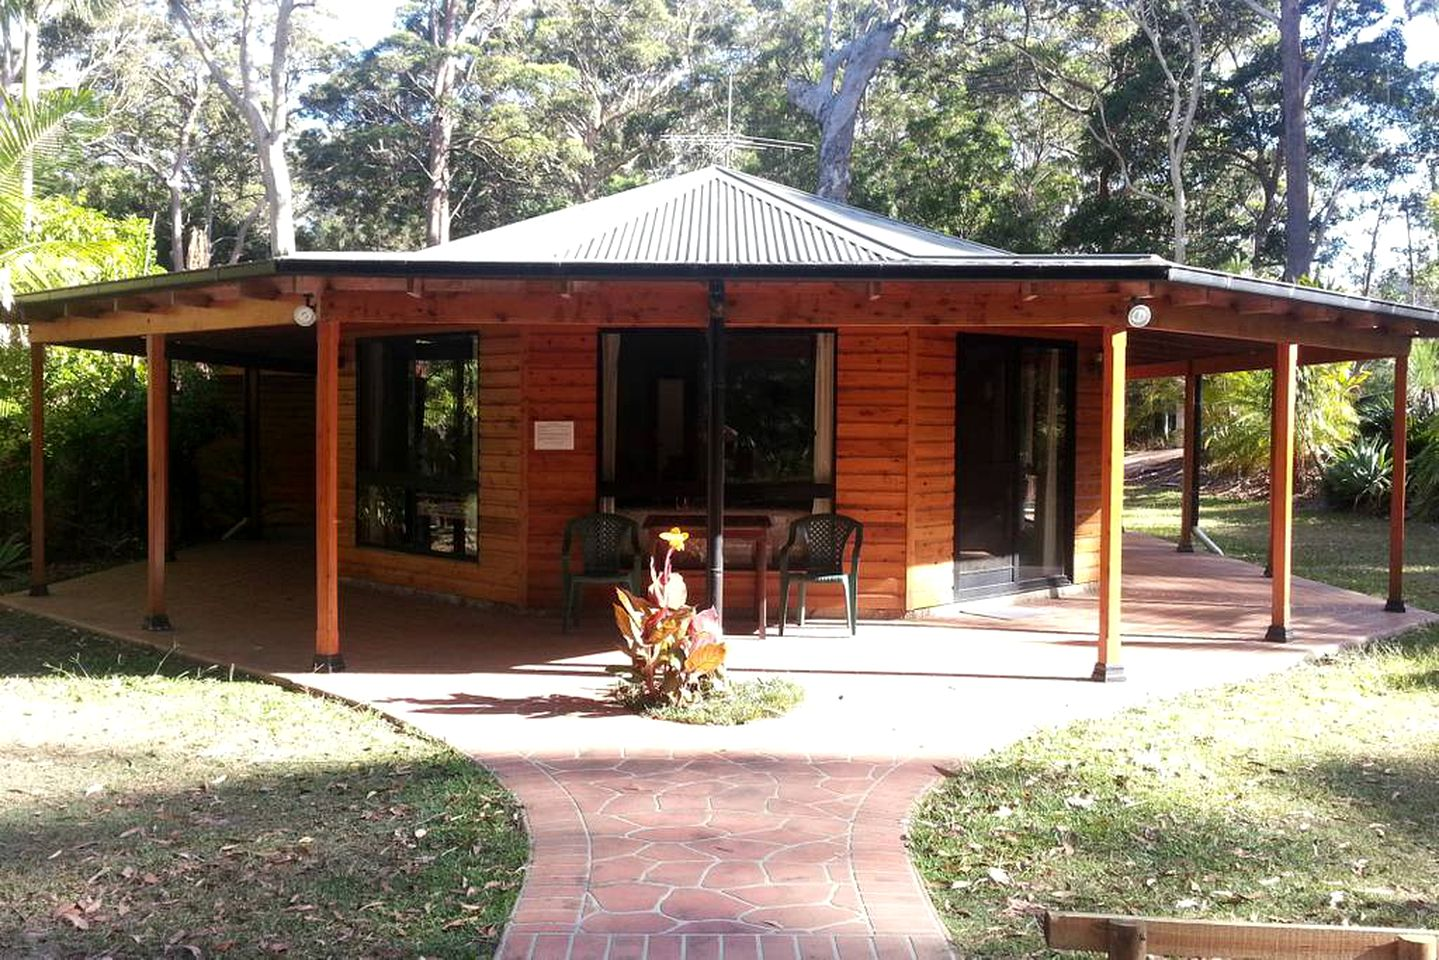 Cabins (Arakoon, New South Wales, Australia)